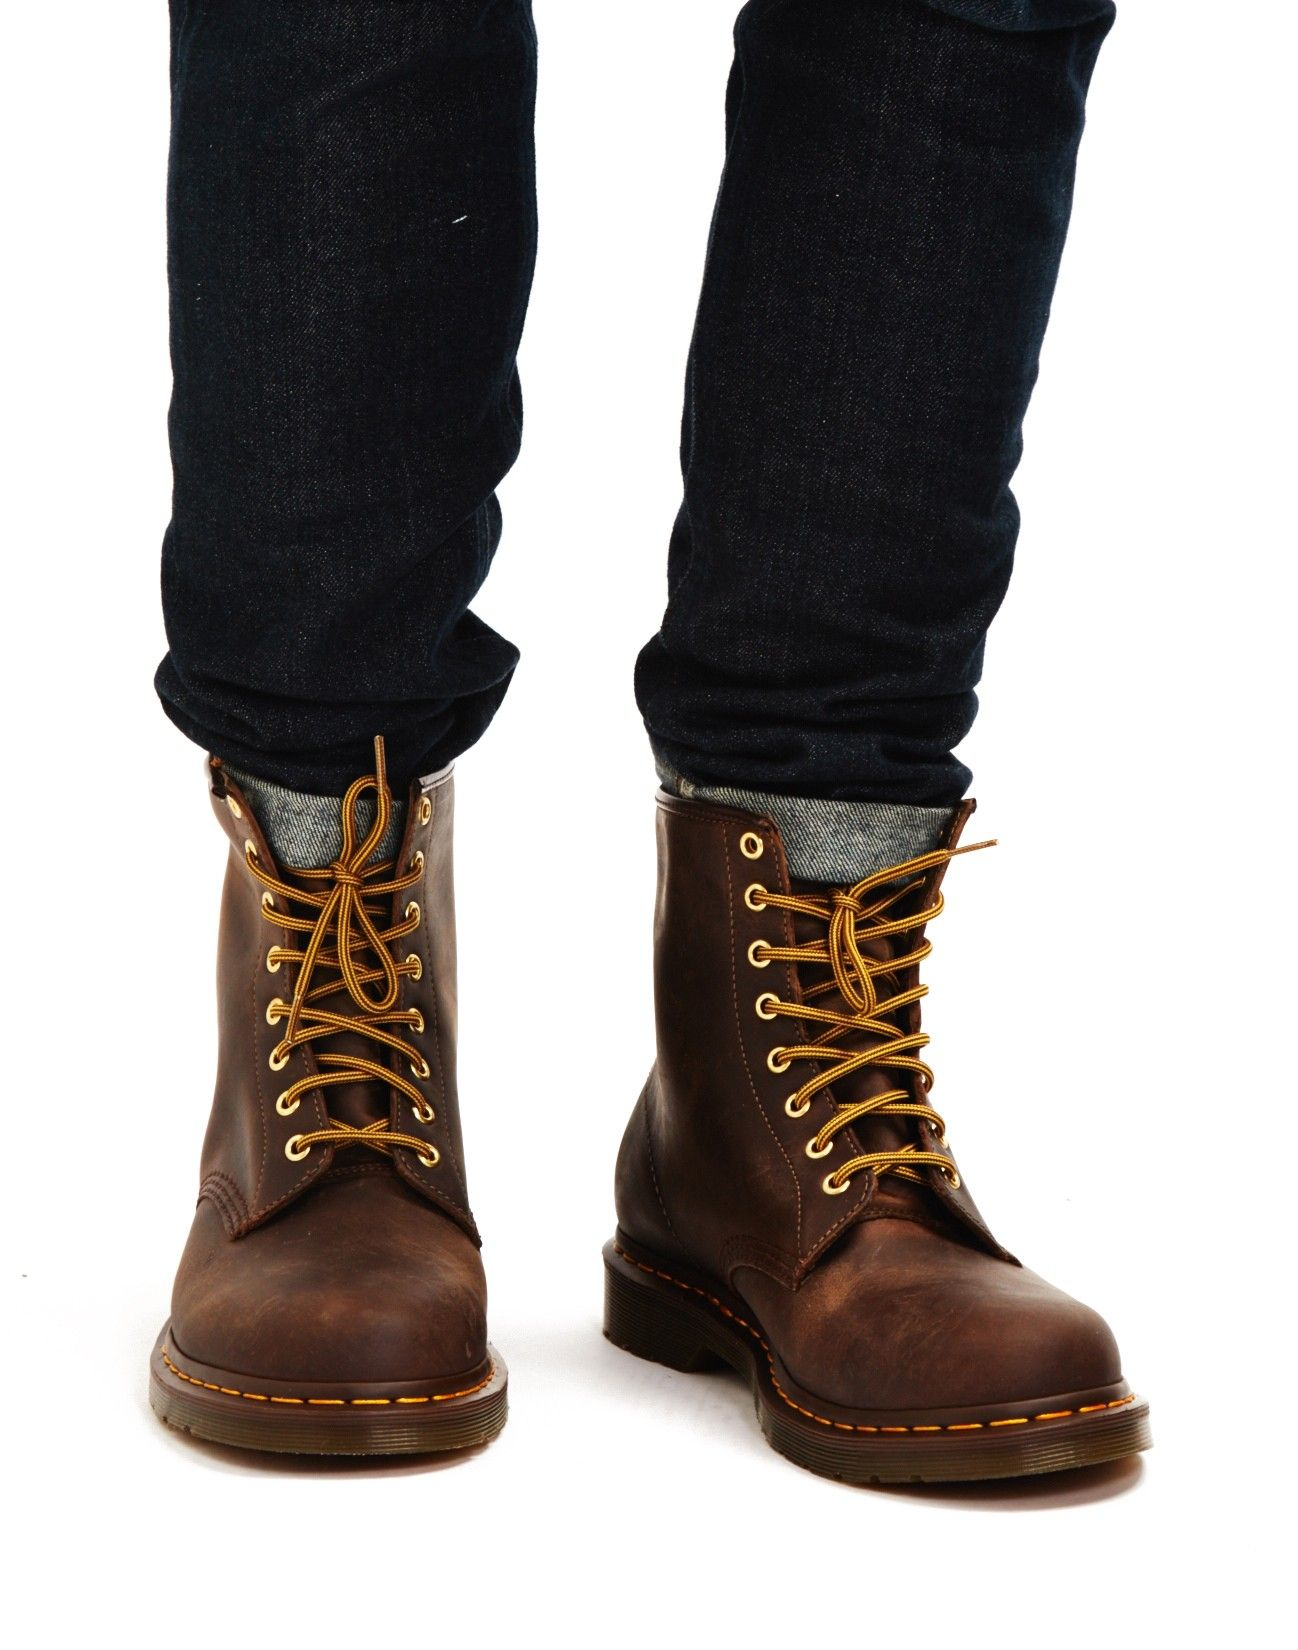 0ce697e1ad3 Dr Martens 8 Eye Rugged Boots Brown | Brian in 2019 | Dr martens, Dr ...